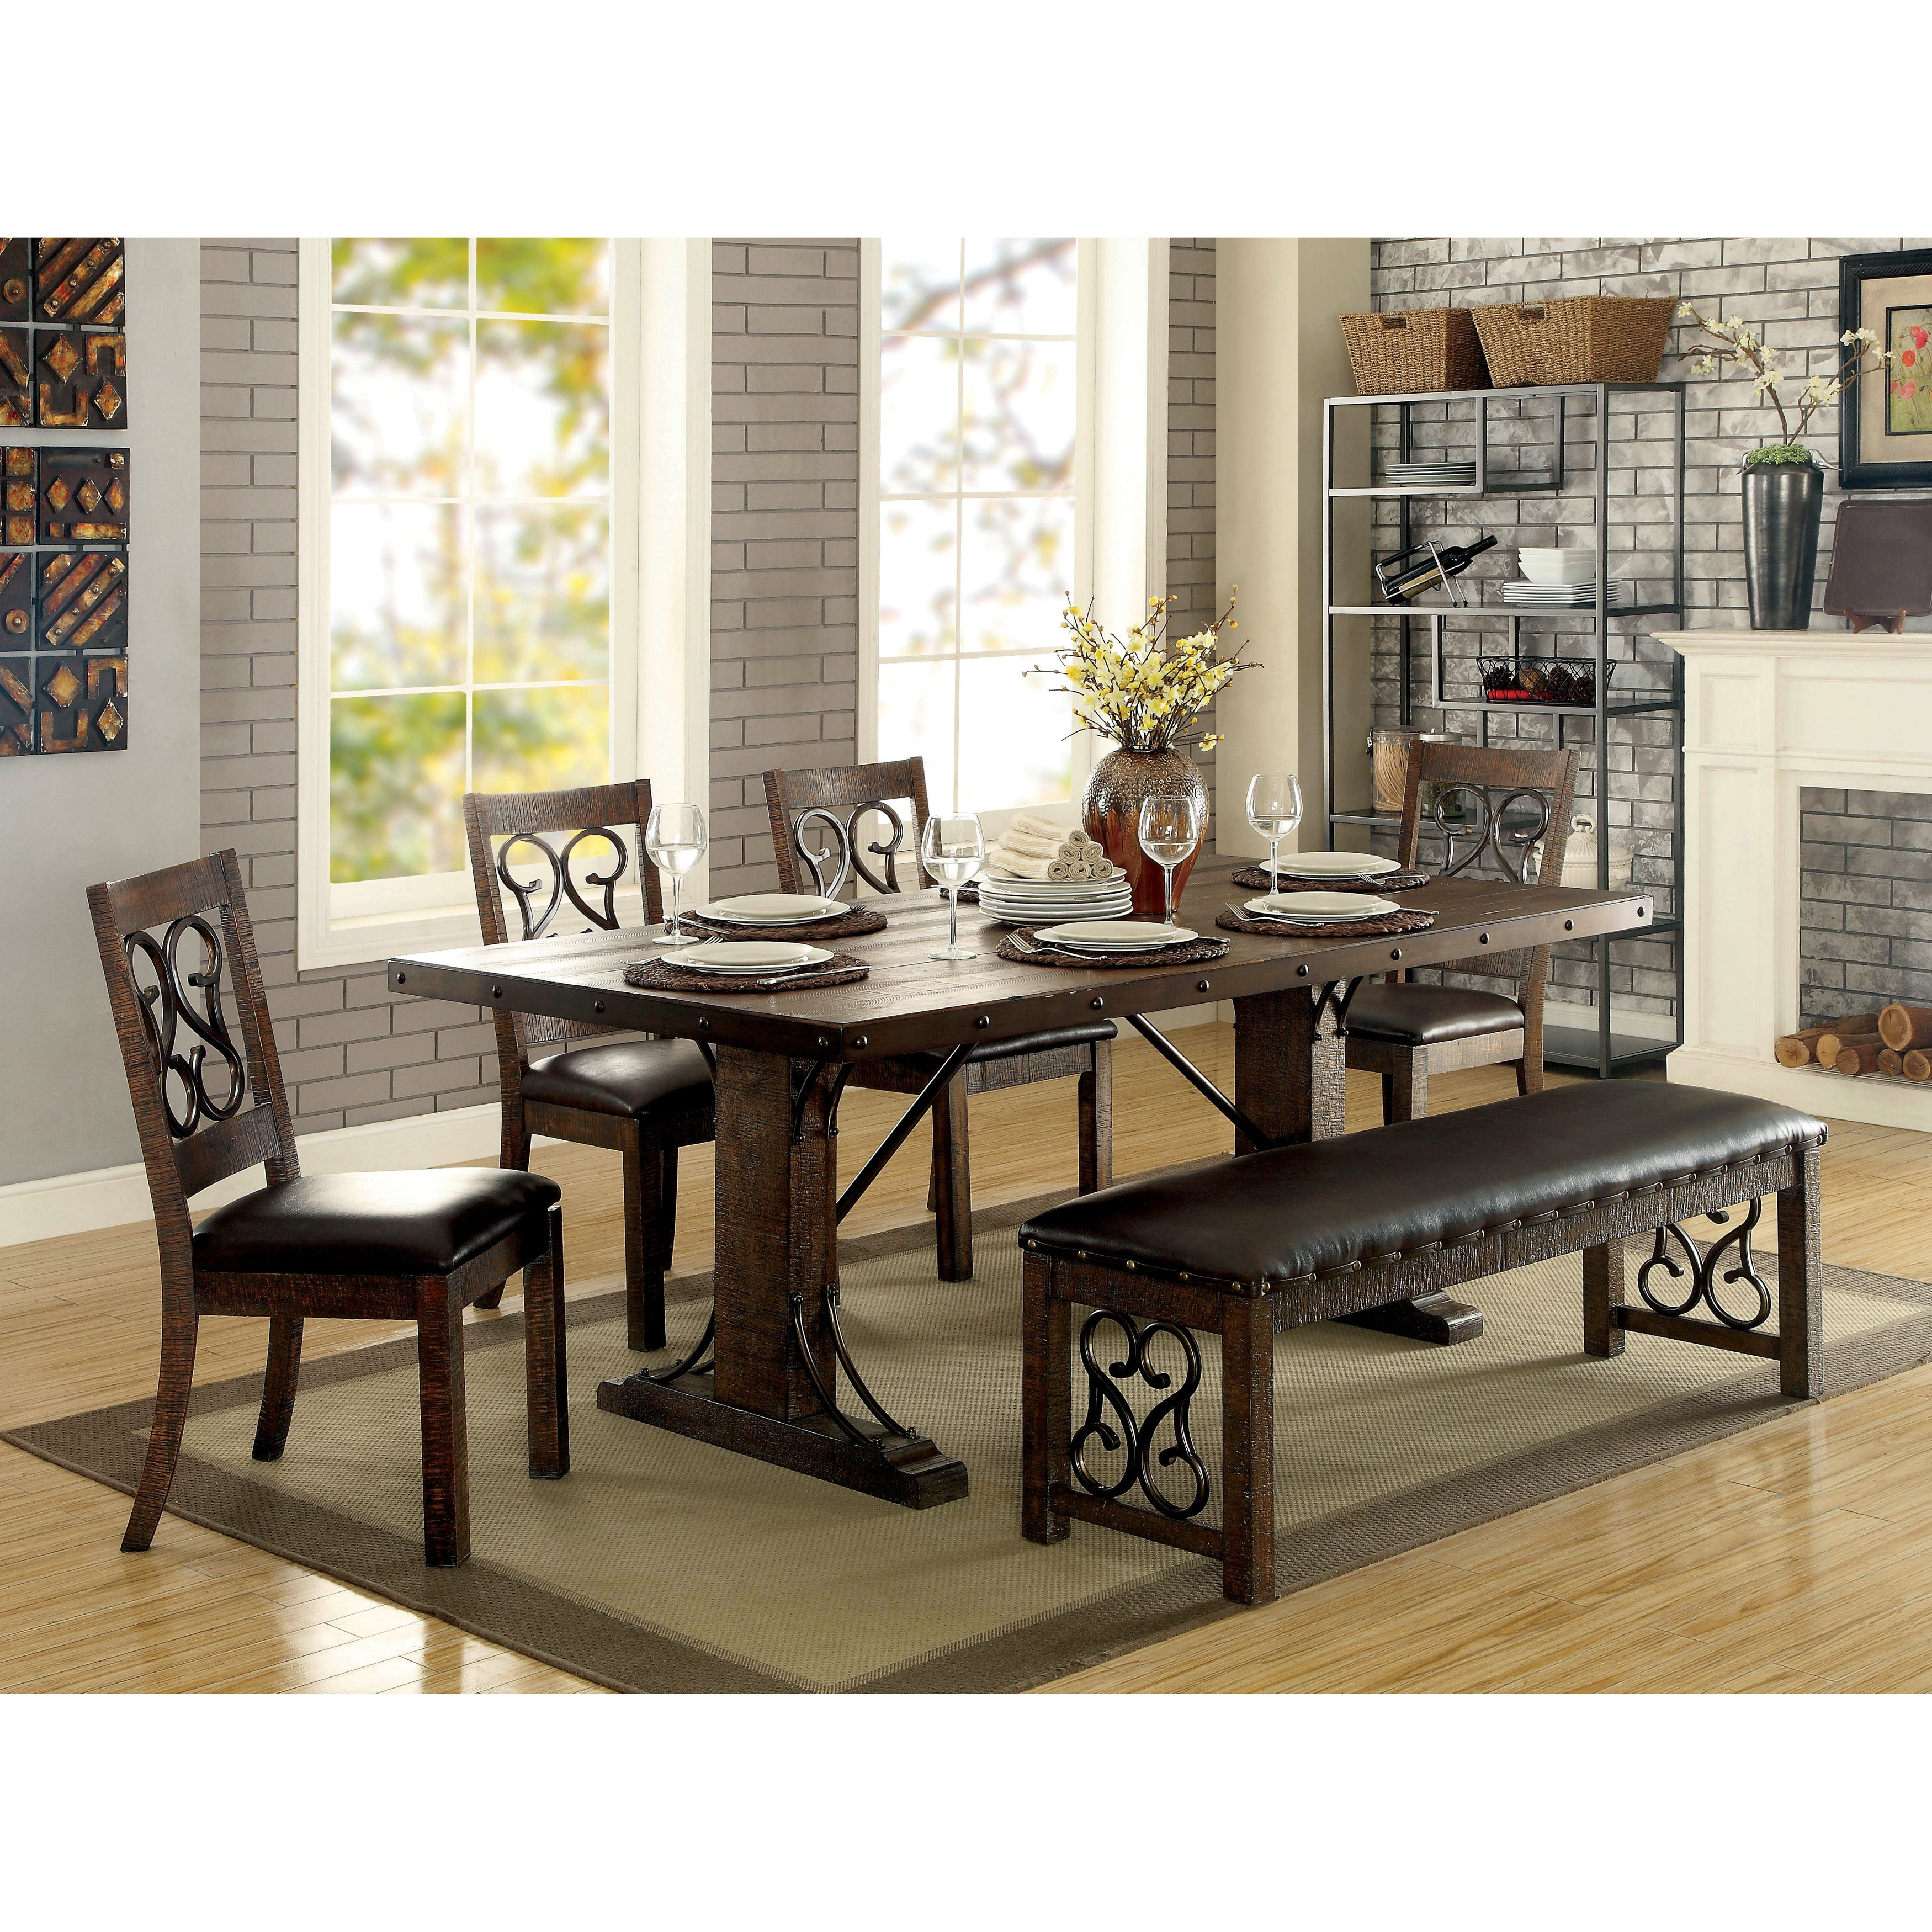 960f2a2bf240 Shop Chester Contemporary Rustic Walnut Dining Table by FOA - Rustic Walnut  - On Sale - Free Shipping Today - Overstock - 14602603